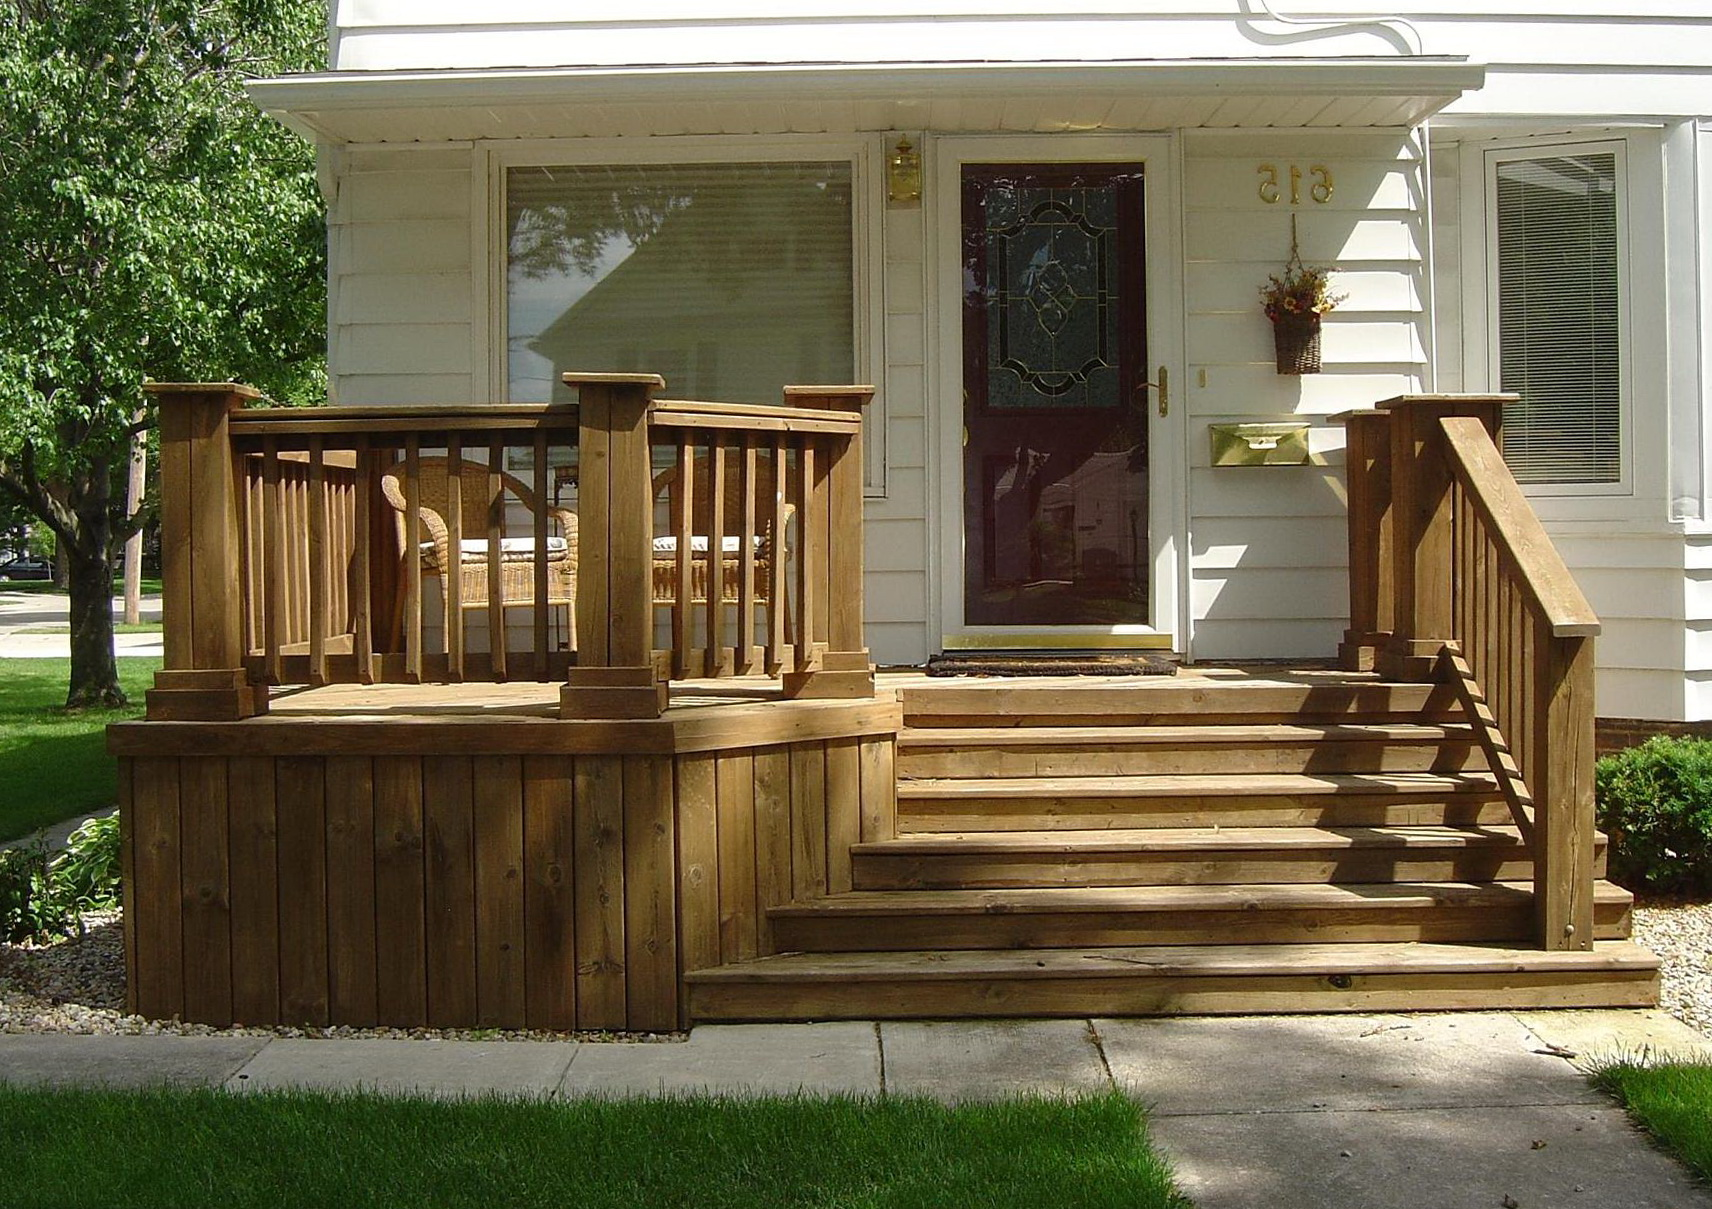 Best wooden patio step design ideas patio design 239 for Front porch patio ideas